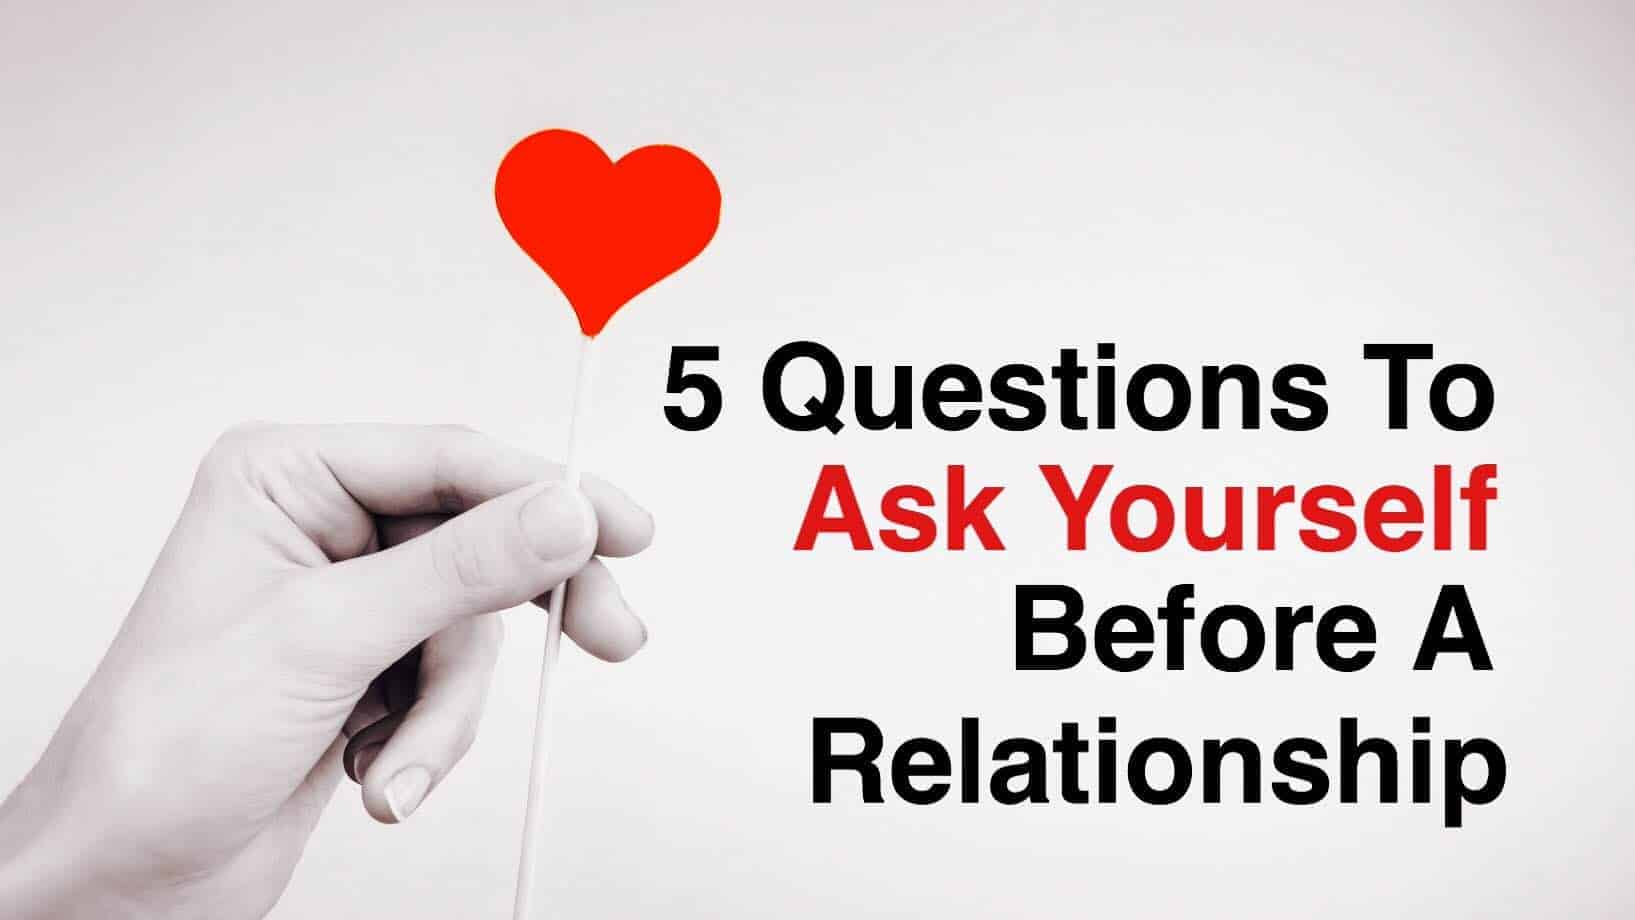 Questions to ask when entering a relationship